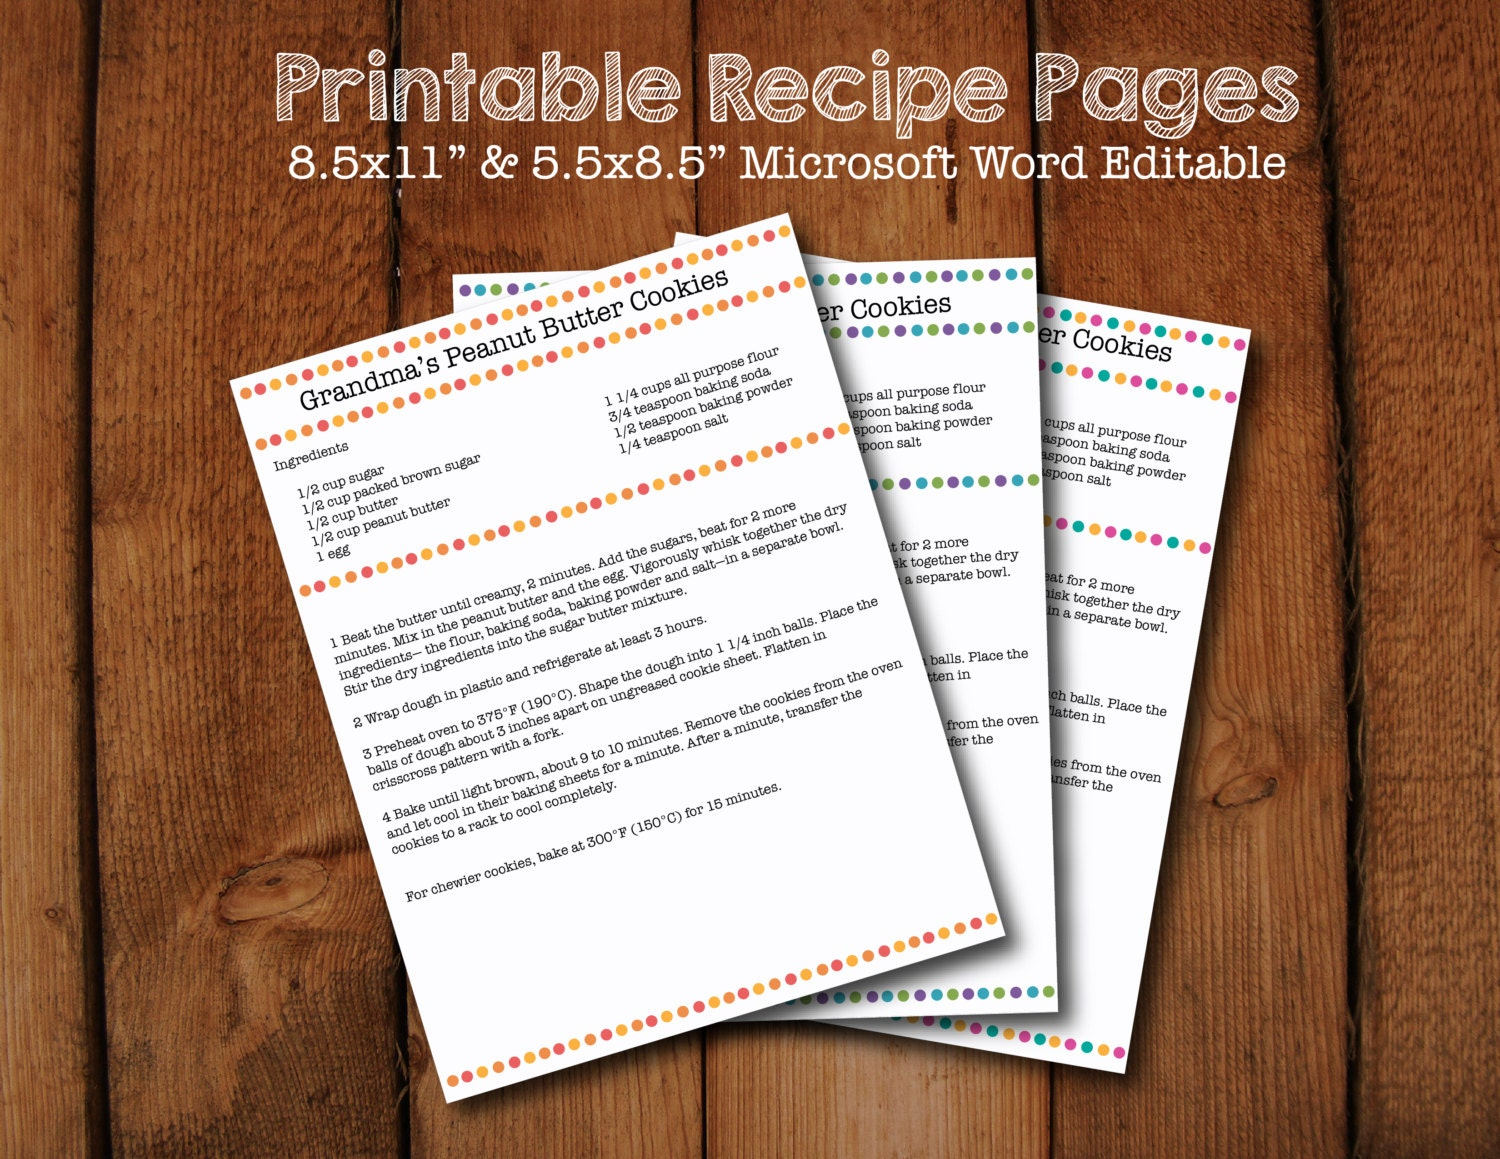 polka dot printable recipe pages microsoft word editable